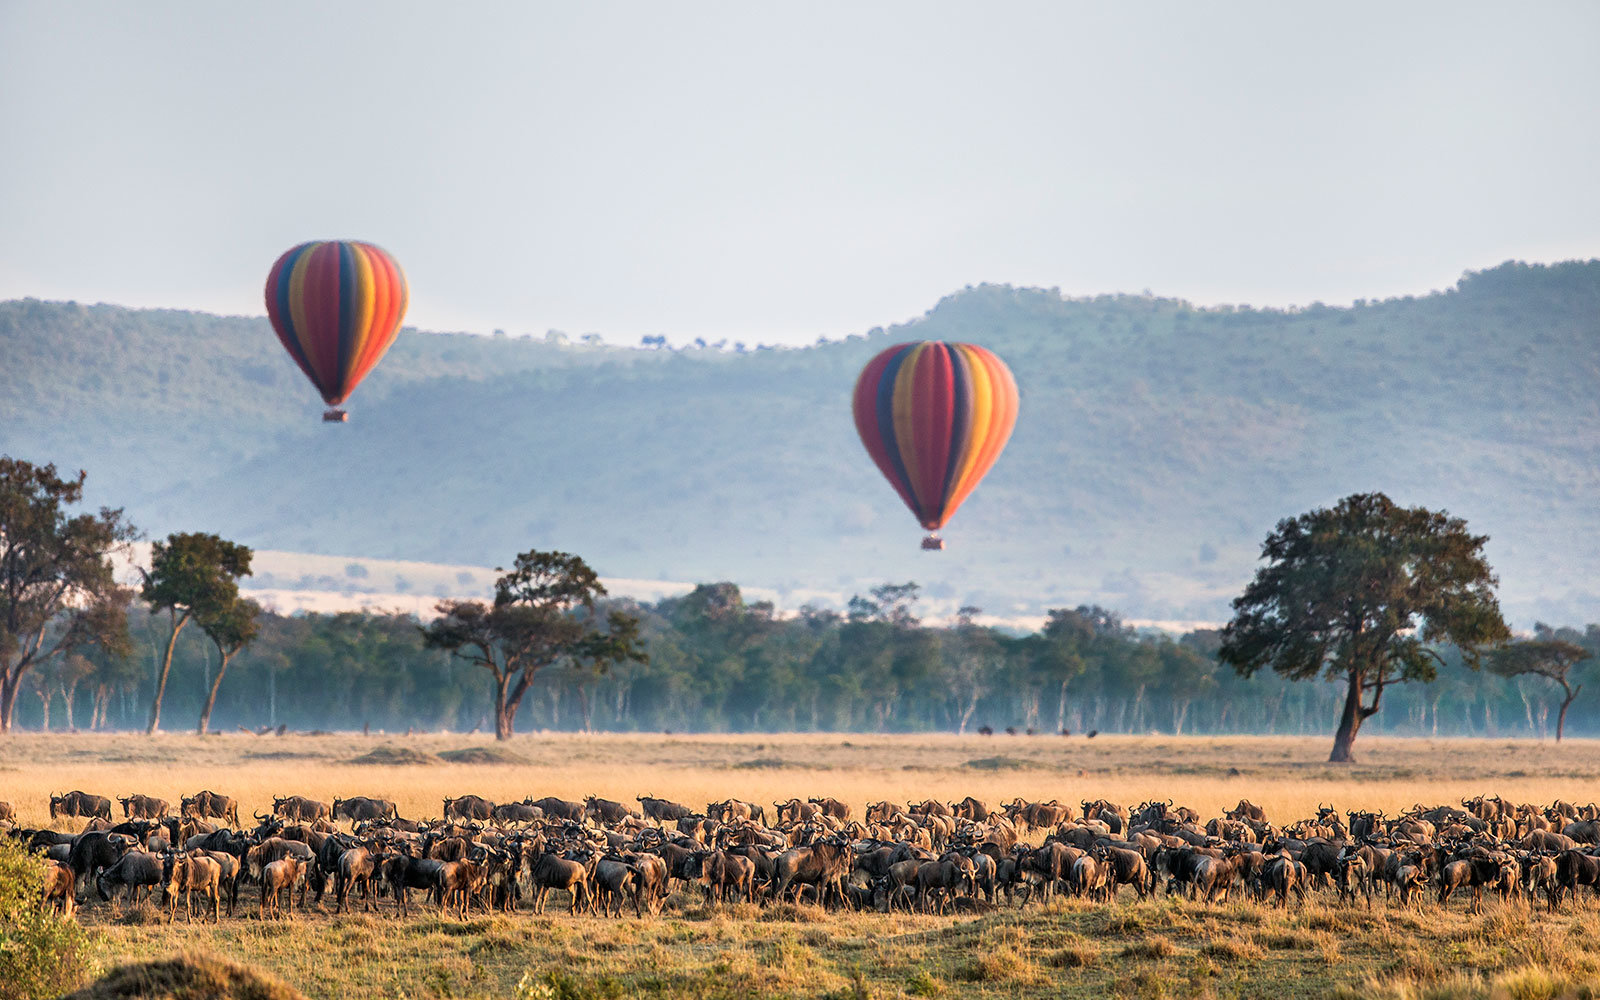 Africa, Kenya, Masai Mara, Narok County. Hot air balloons floating over the Wildebeest migration.